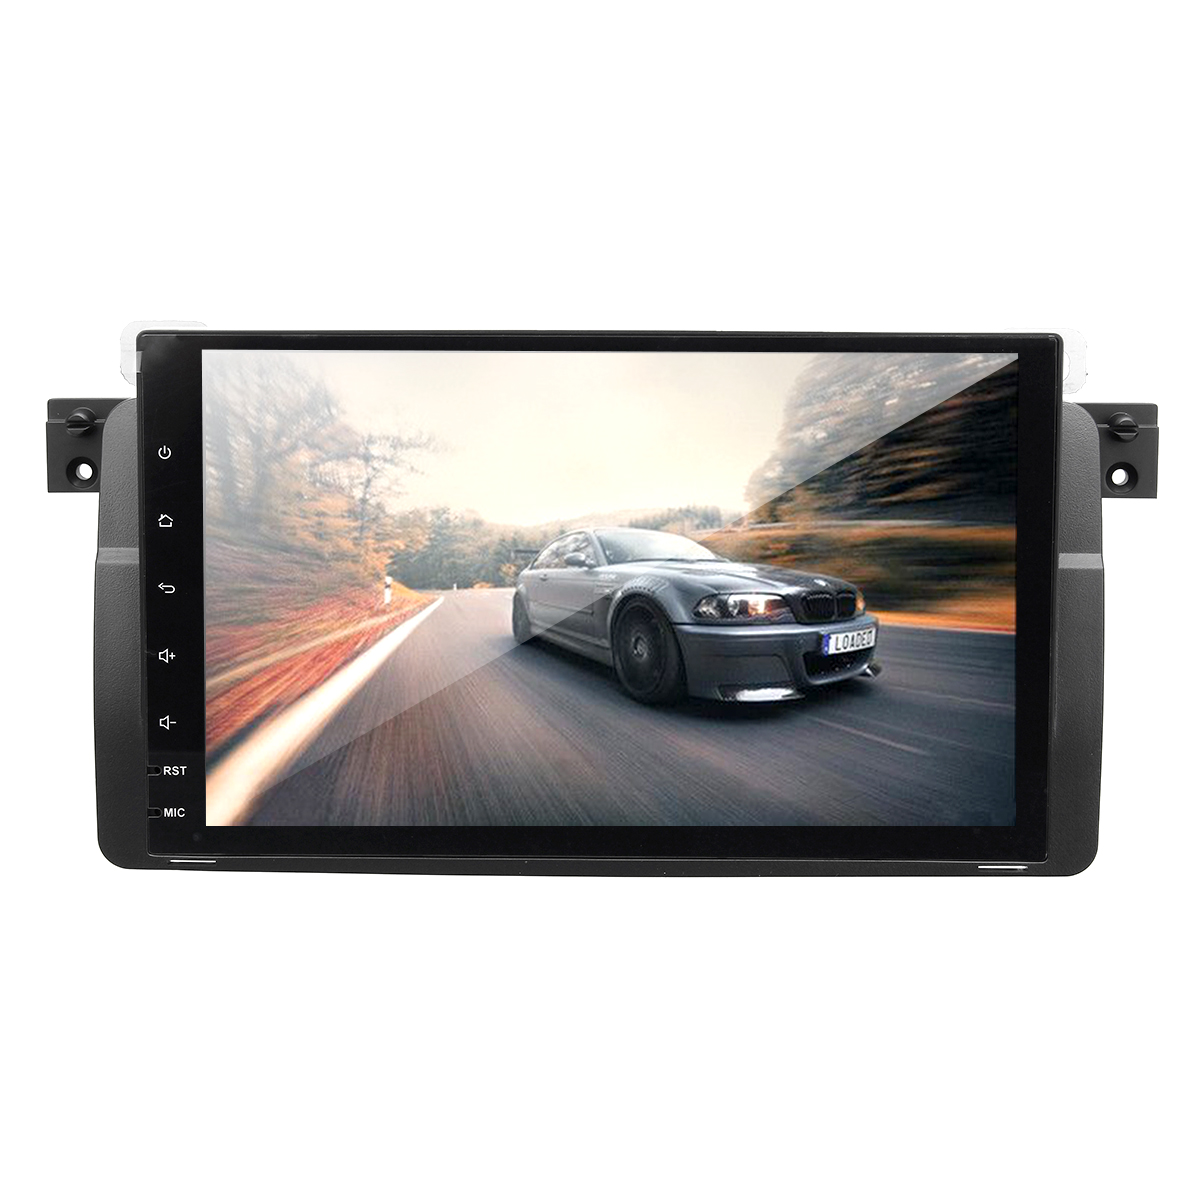 Купить со скидкой 9 Inch Android 8.0 Car Stereo GPS Sat Navigation OBD DAB WiFi for BMW E46 M3 Rover 75 MG ZT